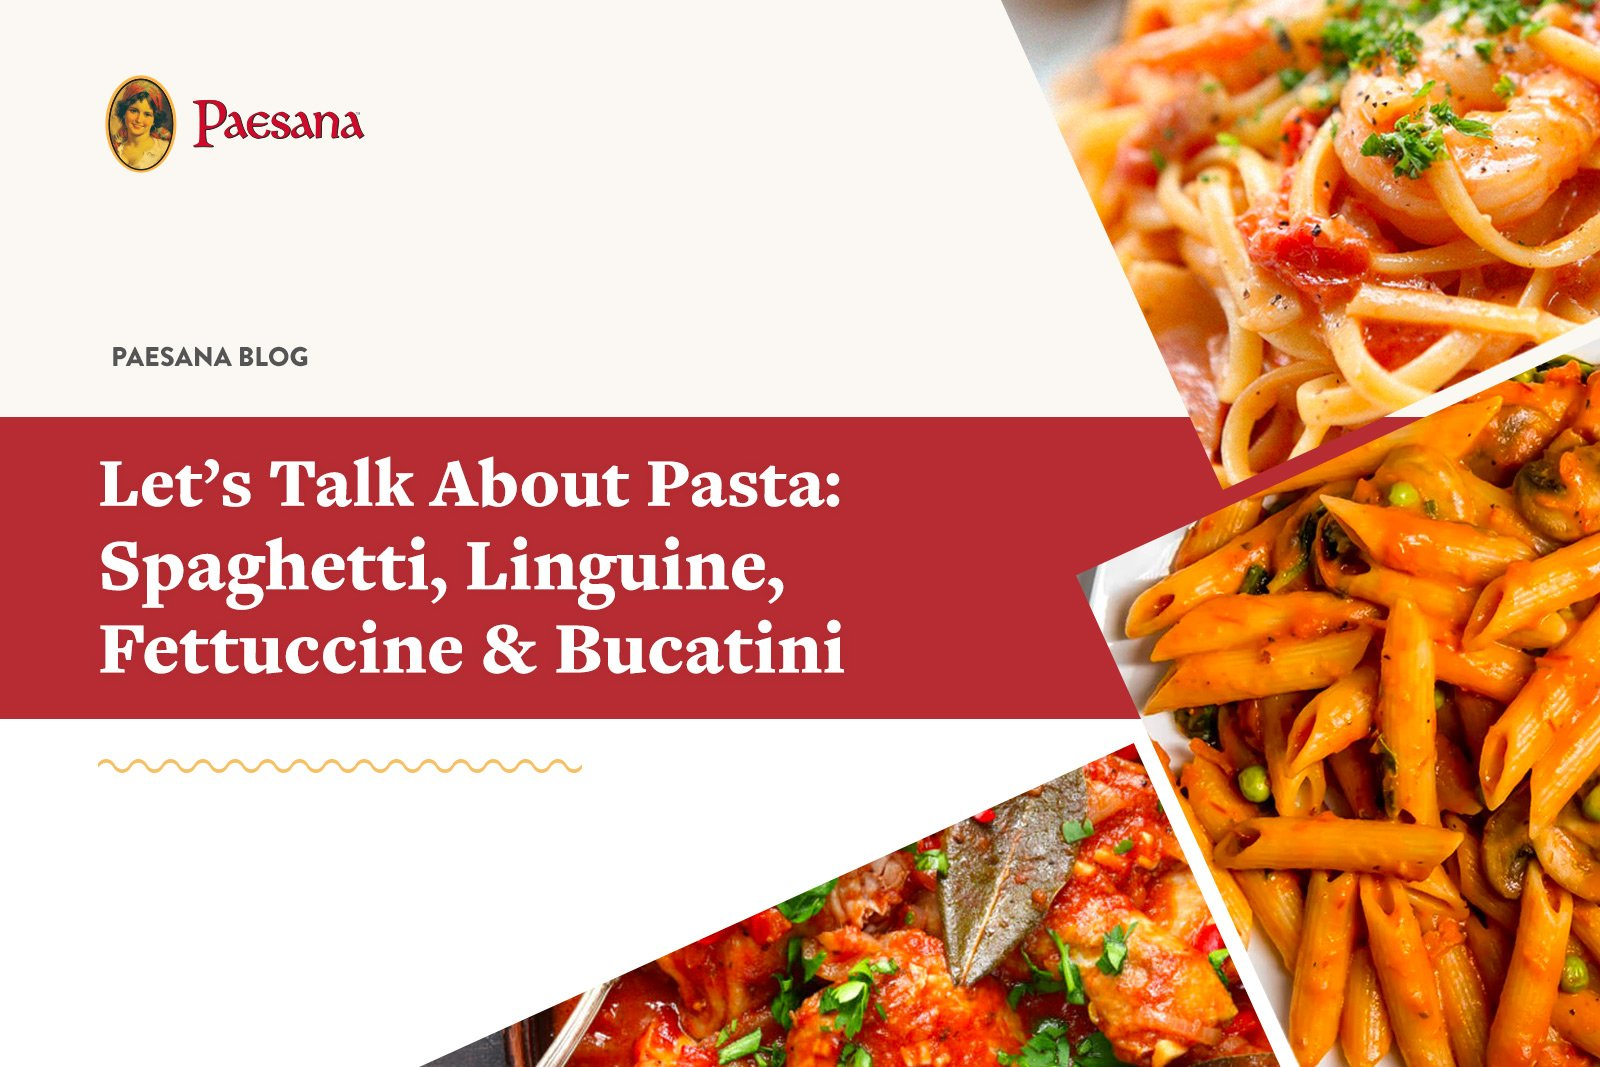 Scrumptous Pasta Dishes with text - Lets talk about Pasta - Let's Talk About Pasta-  Spaghetti, Linguine, Fettuccine & Bucatini